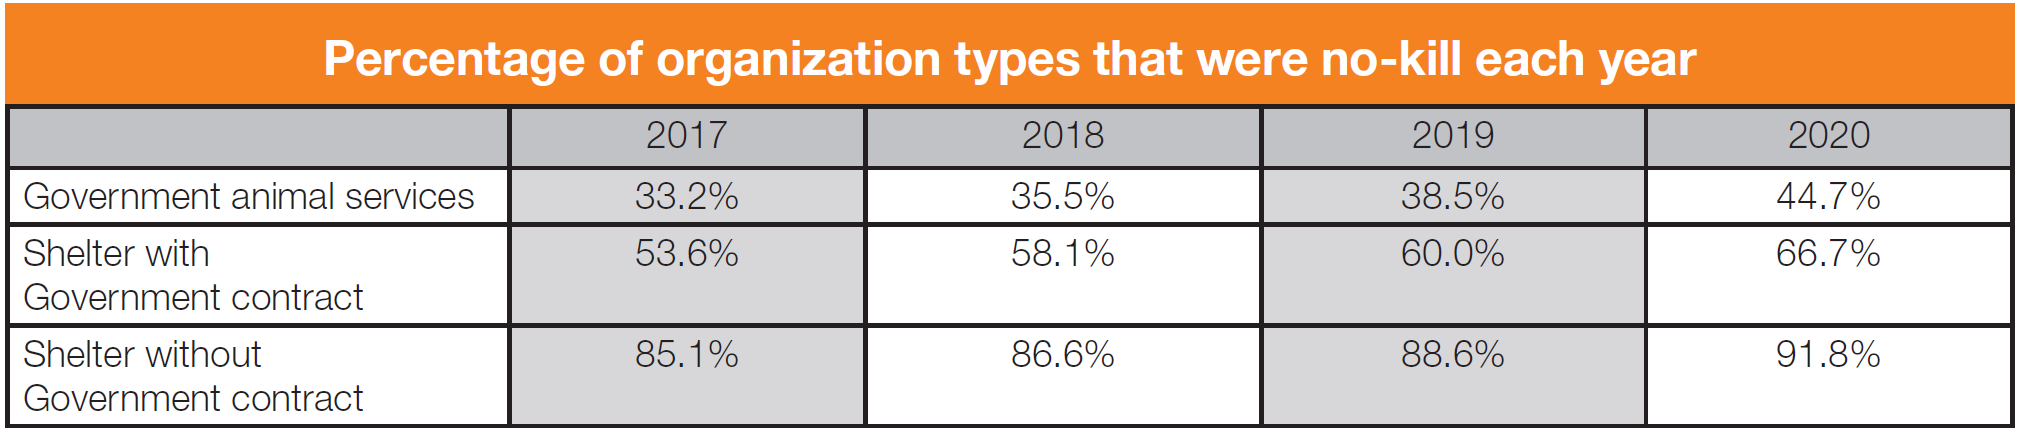 Percentage of organizations that are no-kill table